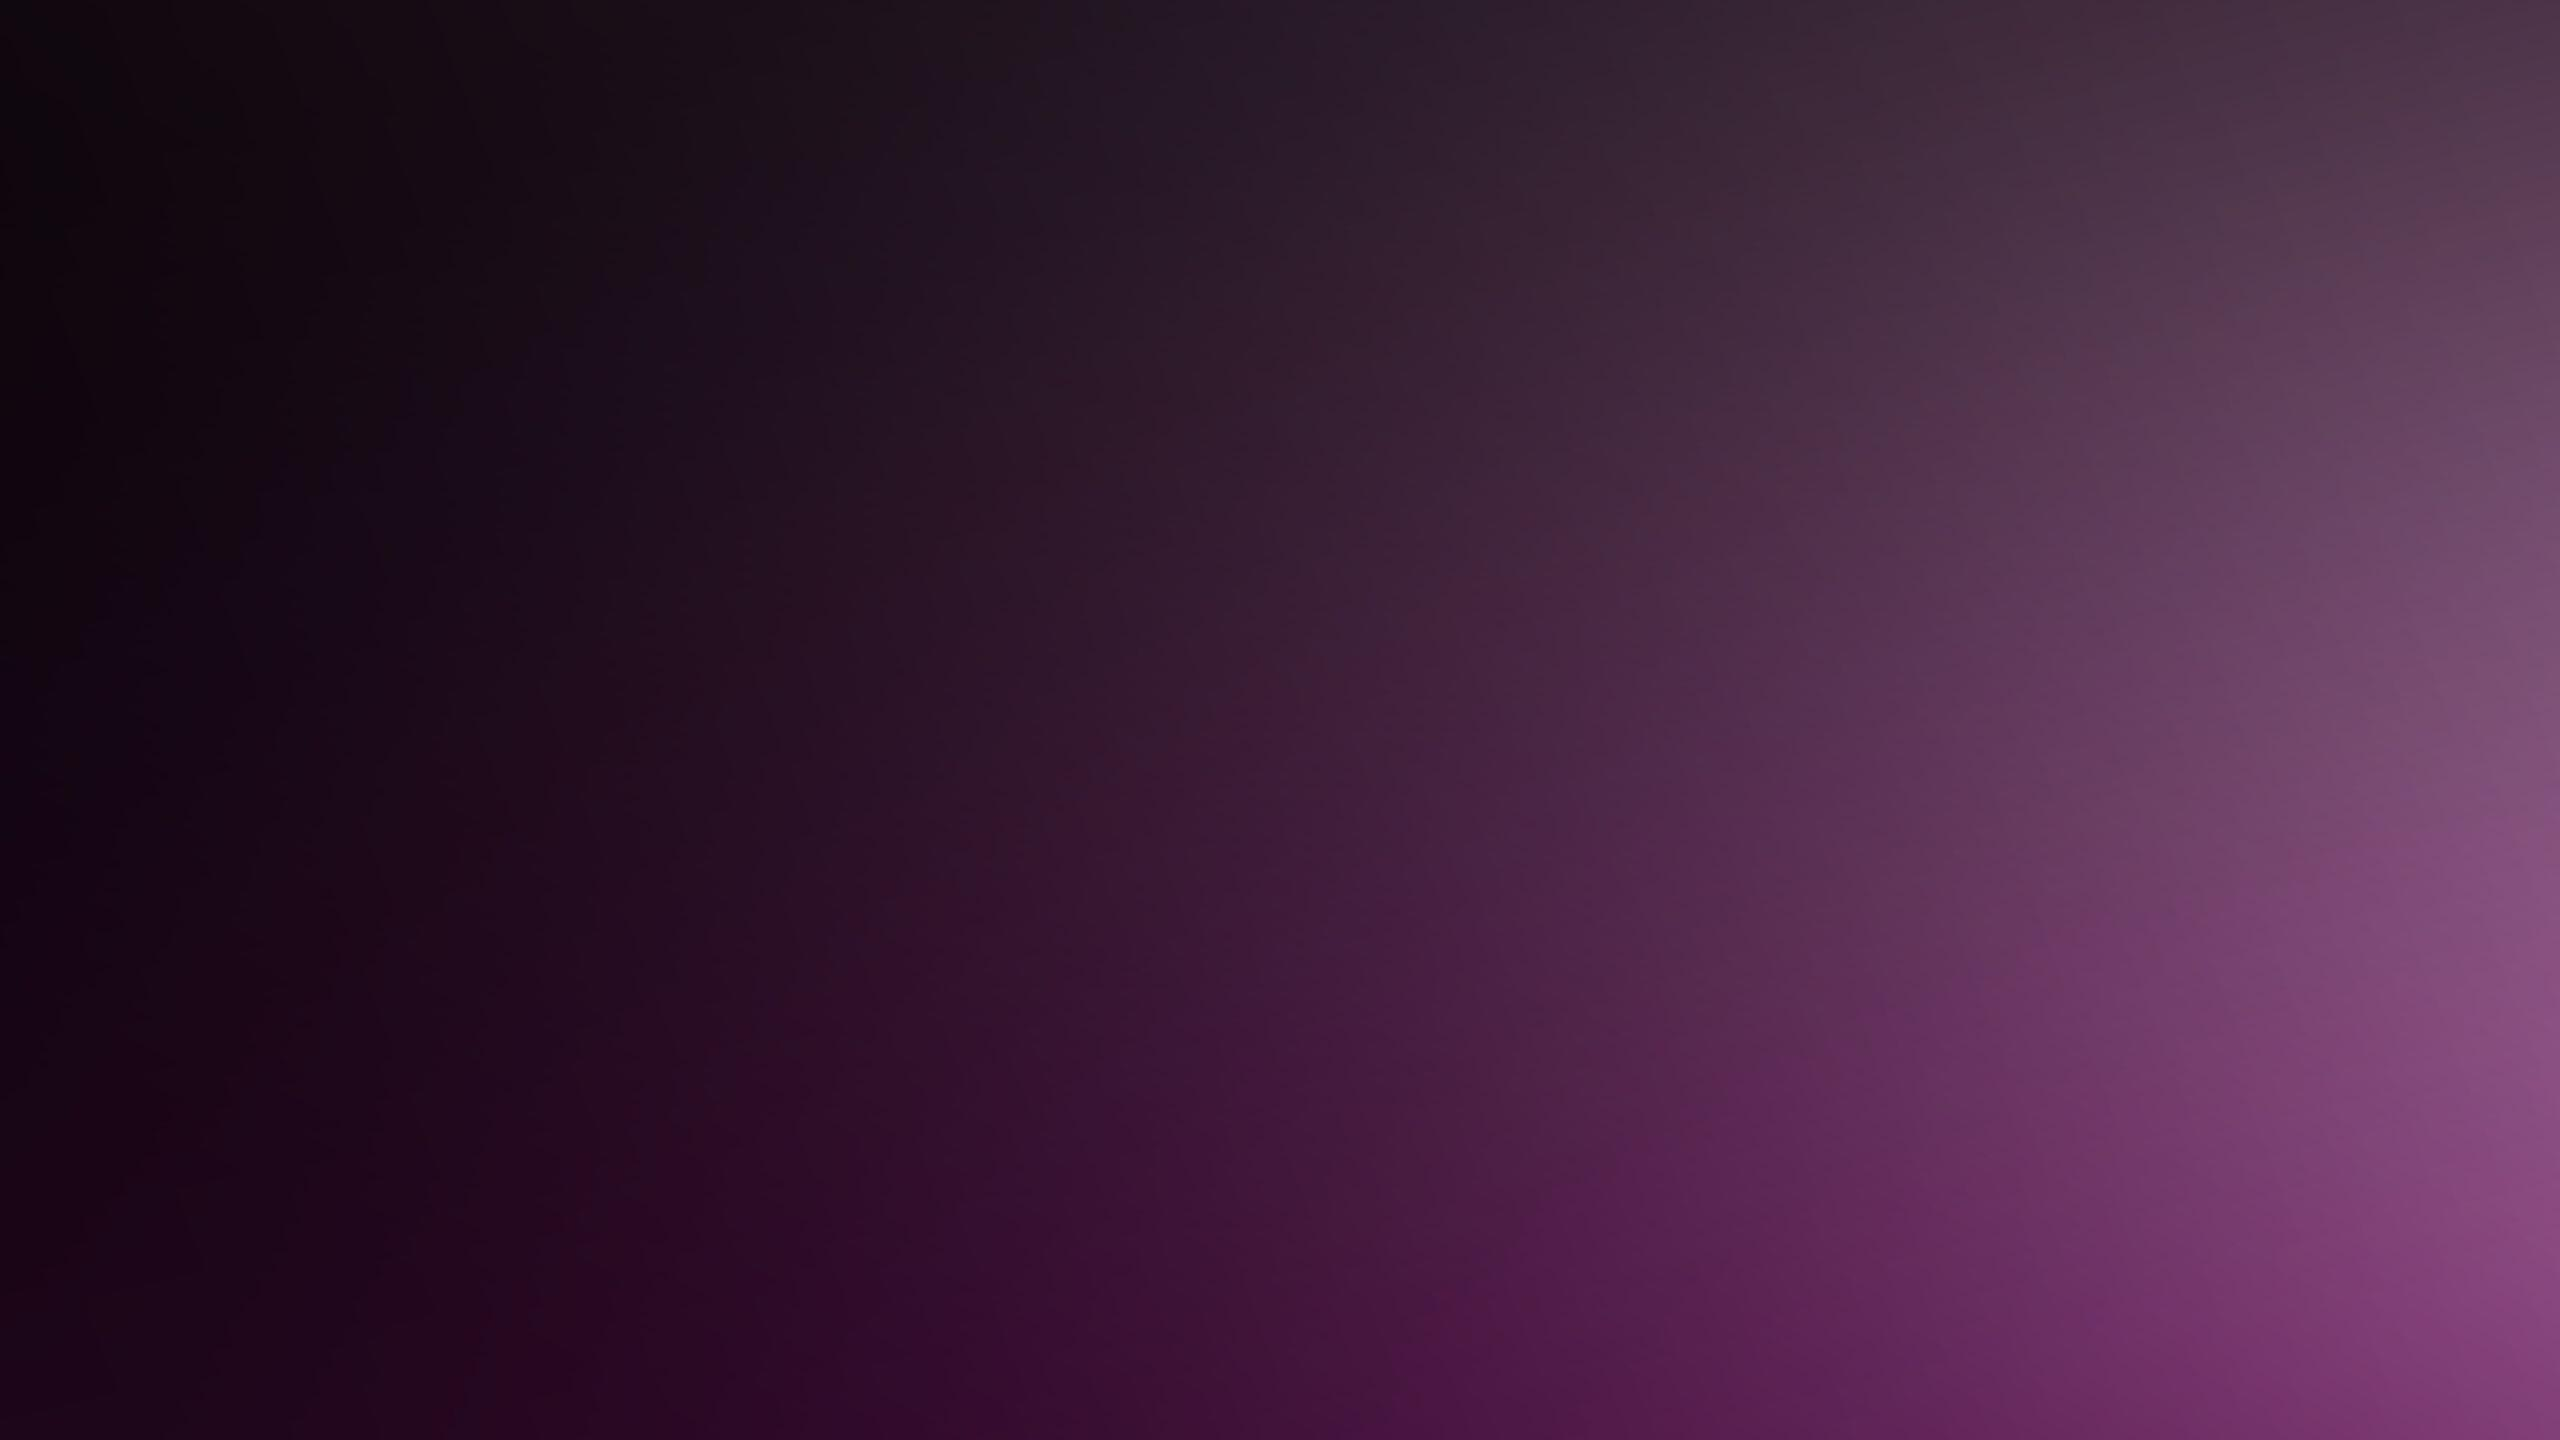 Dark Purple Backgrounds Wallpapers